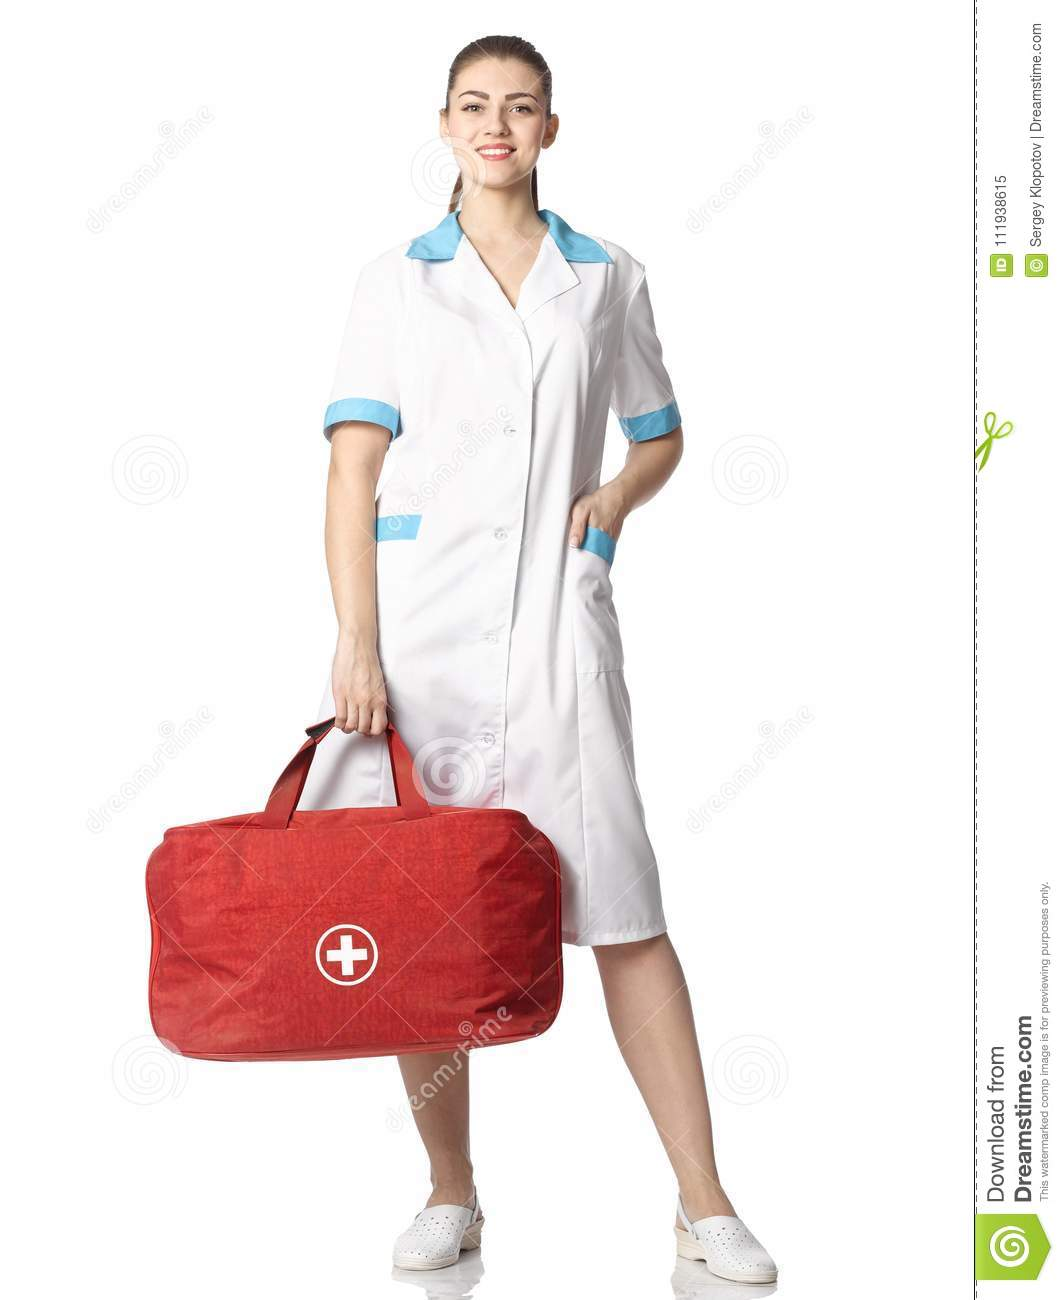 Beautiful nurse girl in suit with red bag and white cross.